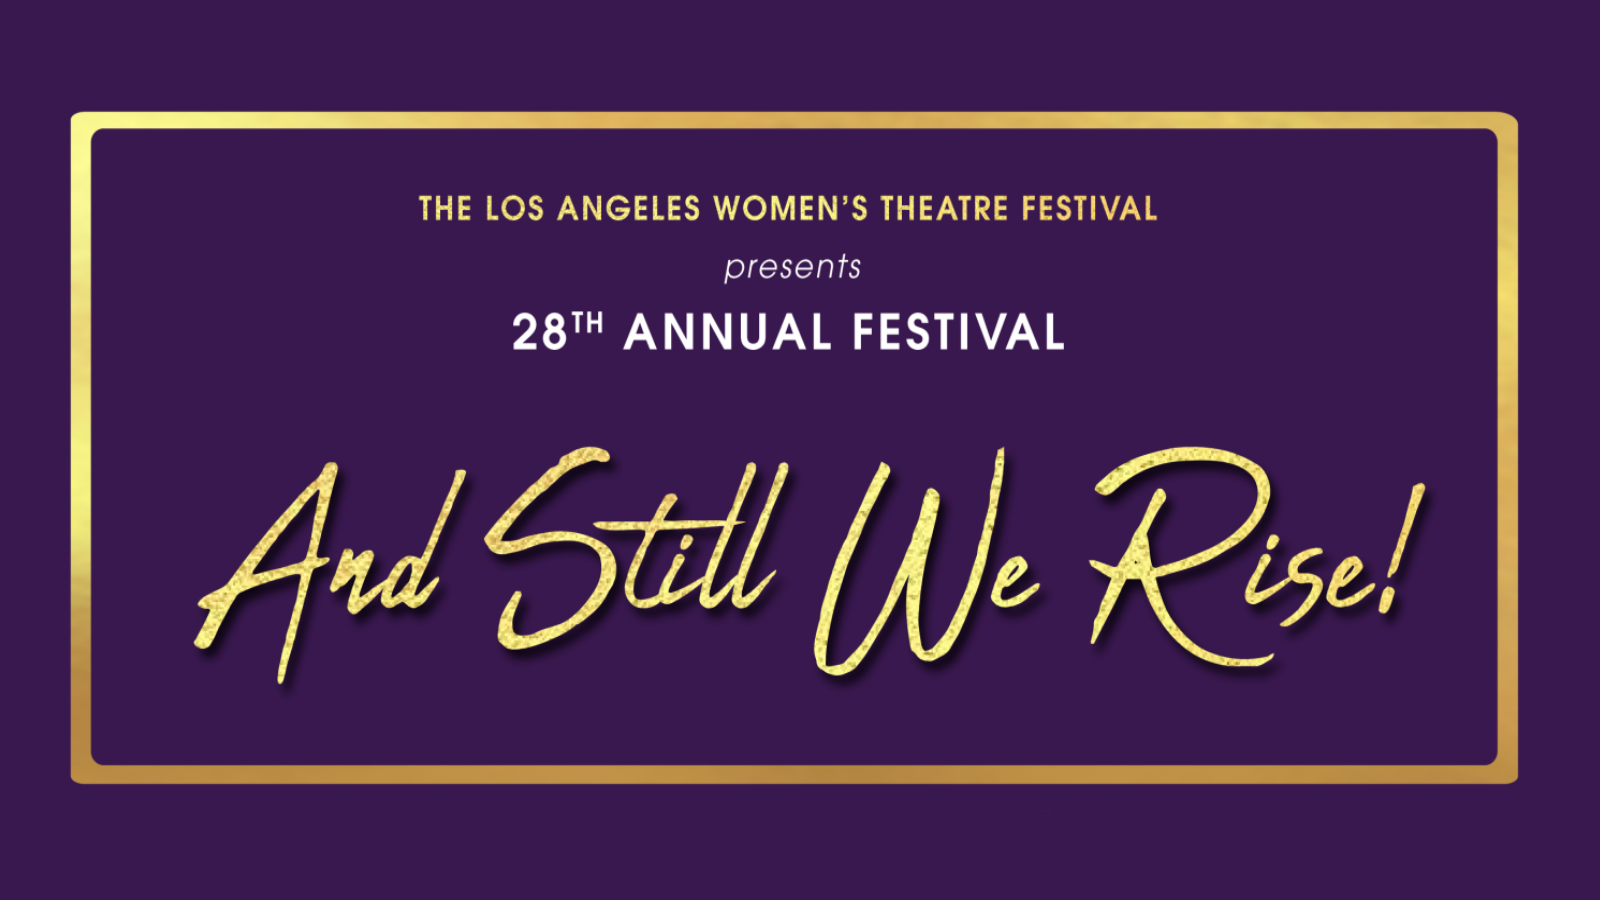 28th Annual Los Angeles Women's Theatre Festival: